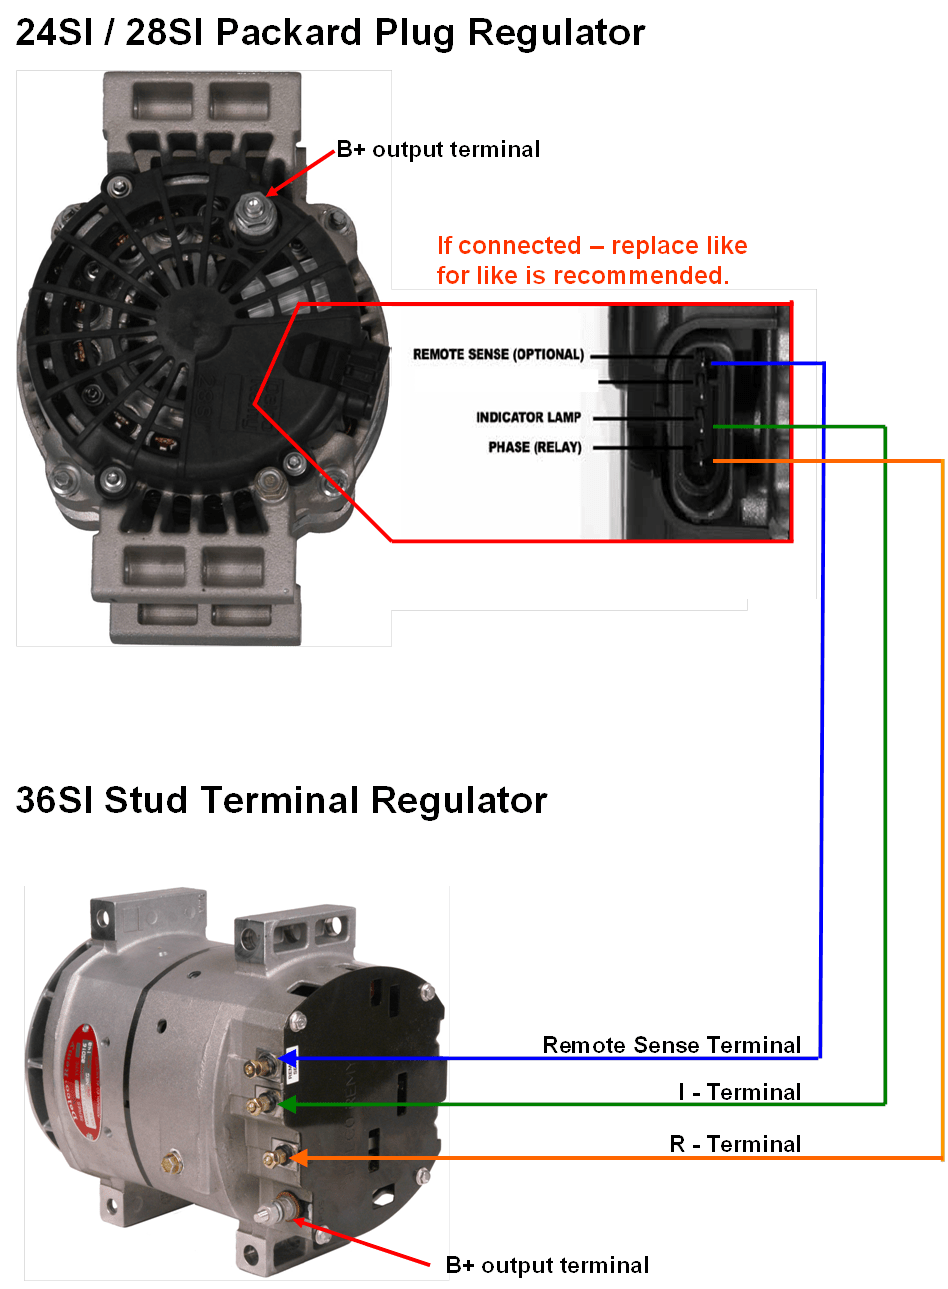 hight resolution of if the original model plug regulator is not in use therefore not connected with an oem harness the model can be replaced by this proposed replacement part